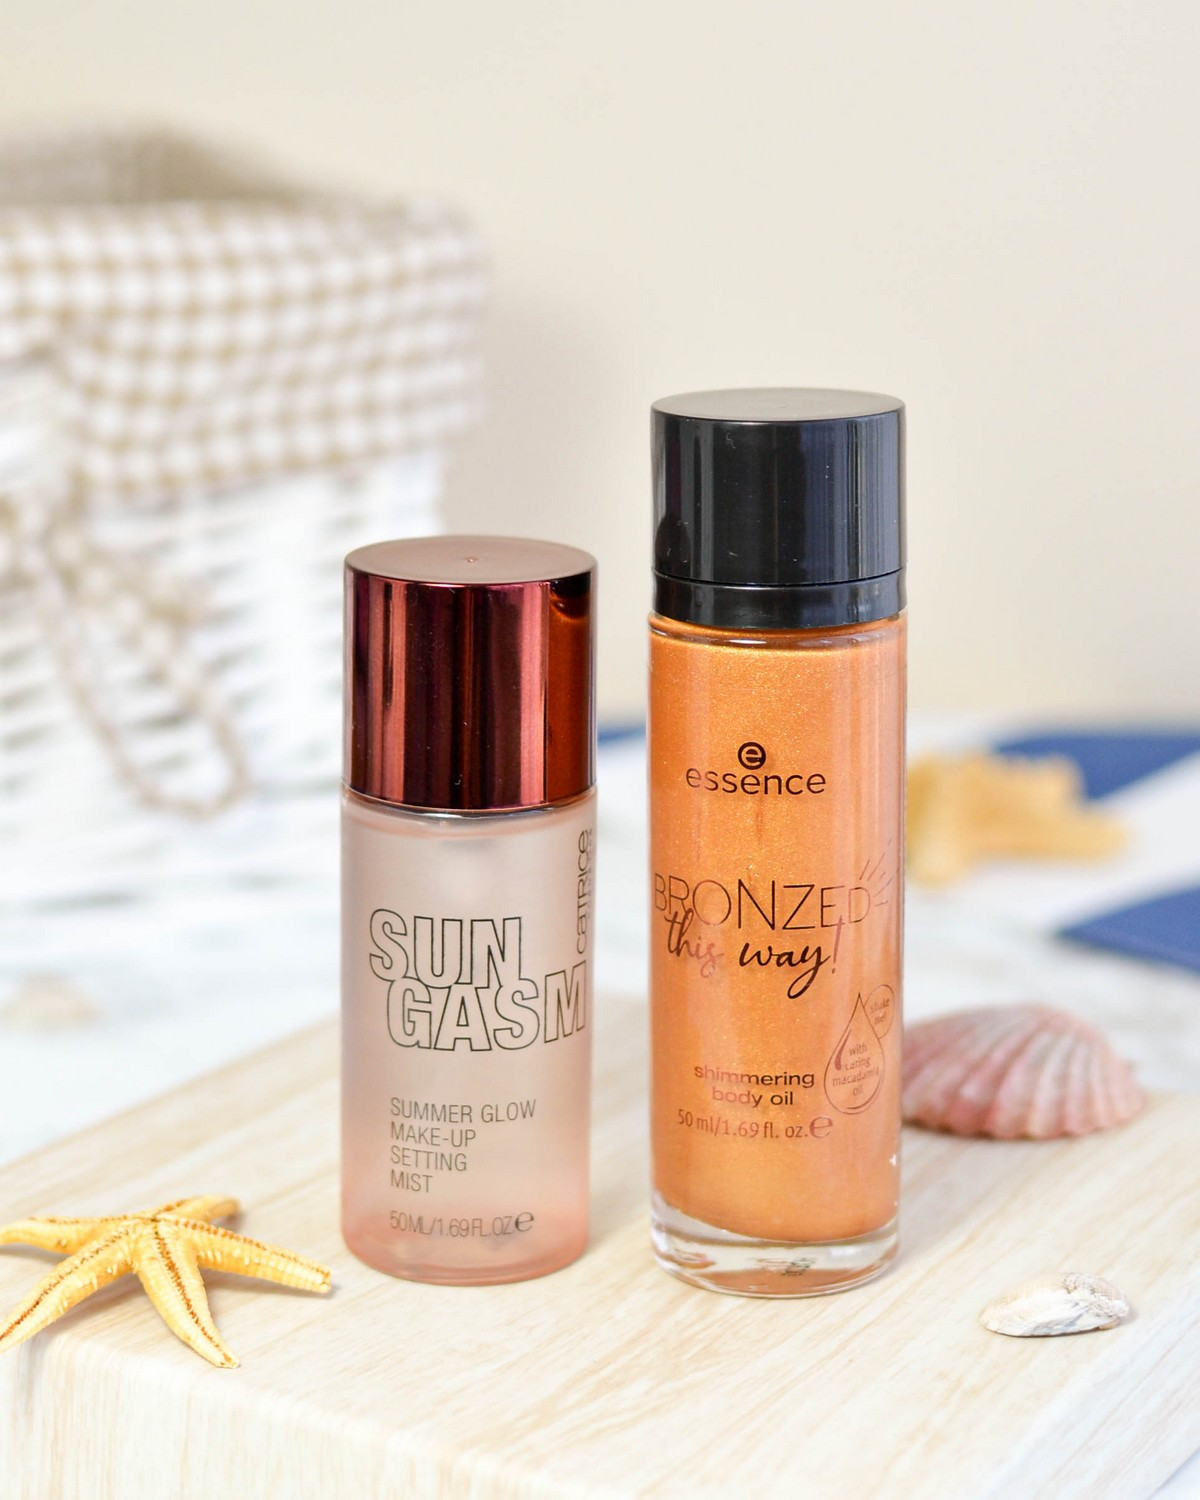 Catrice Sungasm LE Setting Spray and Essence Bronzed This Way! Shimmering Body Oil